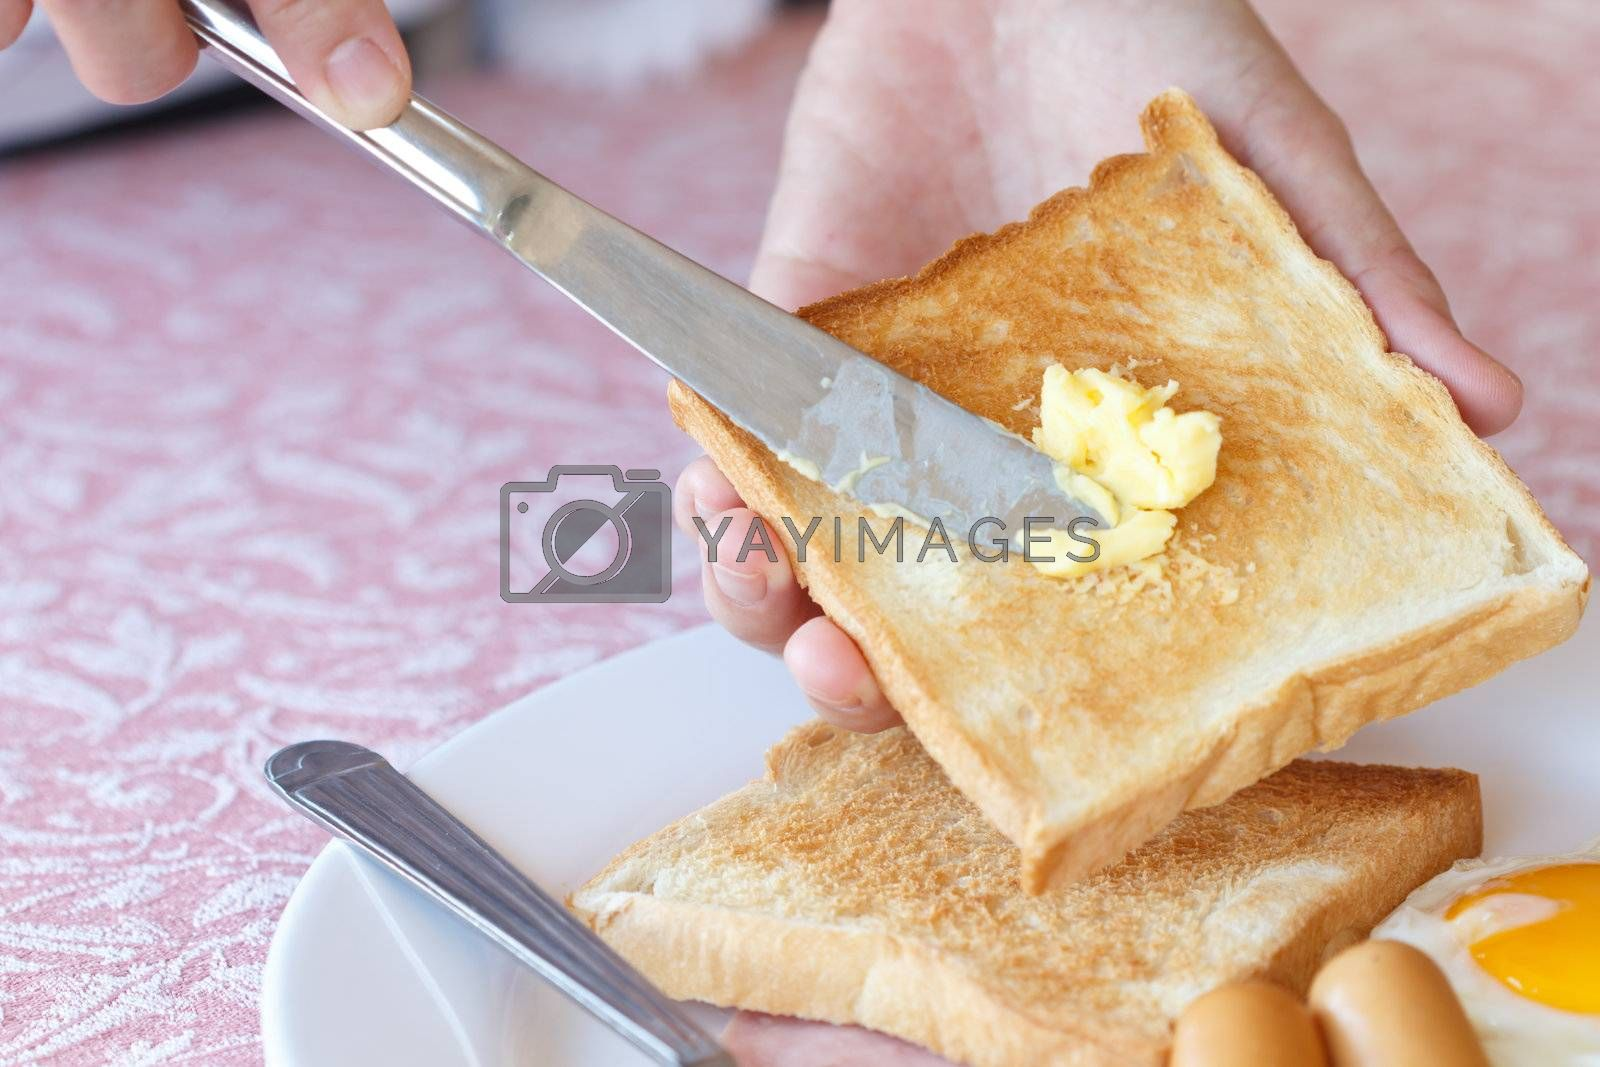 Buttered bread. by tiverylucky